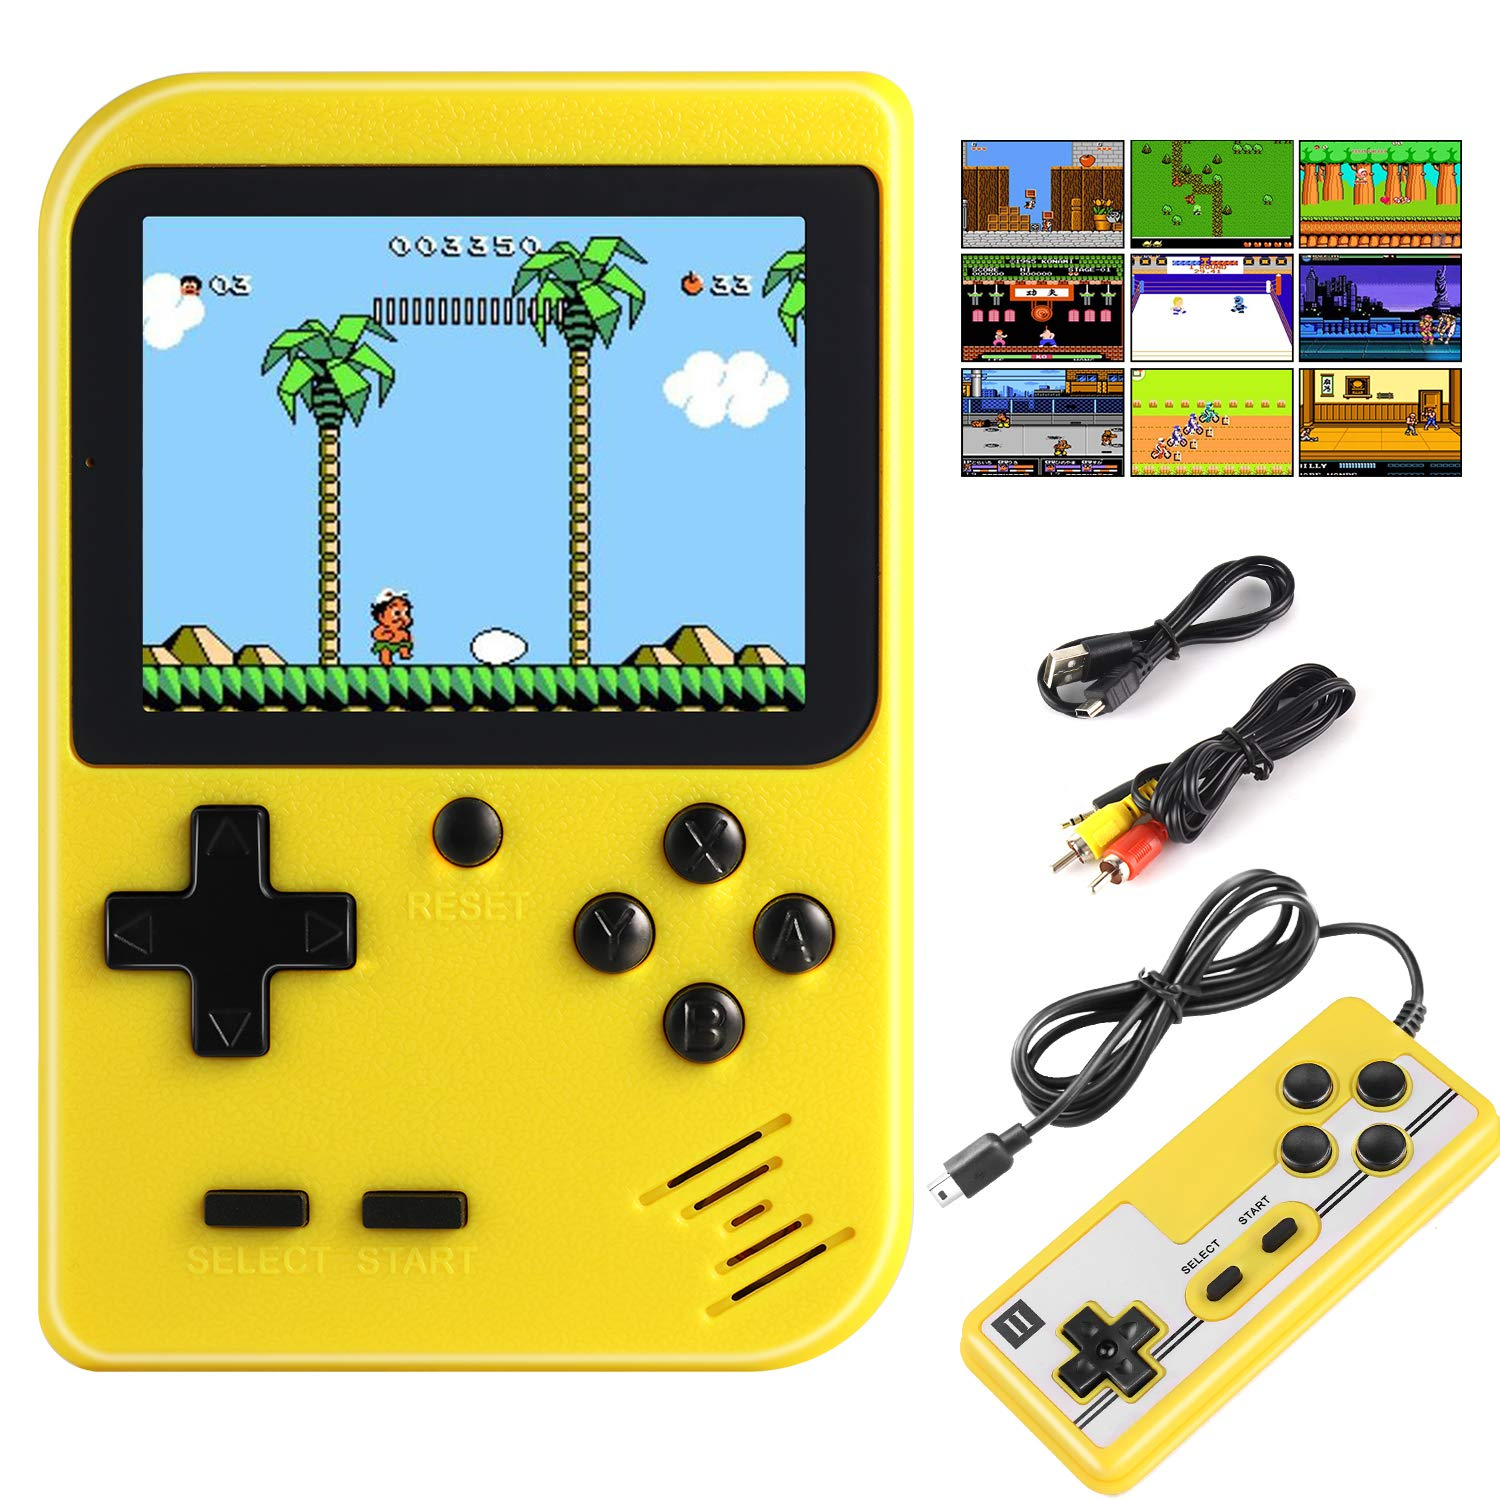 Diswoe Handheld Game Console, Portable Retro Game Player With 400 Classical FC Games 2.8-Inch Color Screen Handheld Gameboy Support TV Two Players 800mAh Rechargeable Battery Gift for Kids and Adult